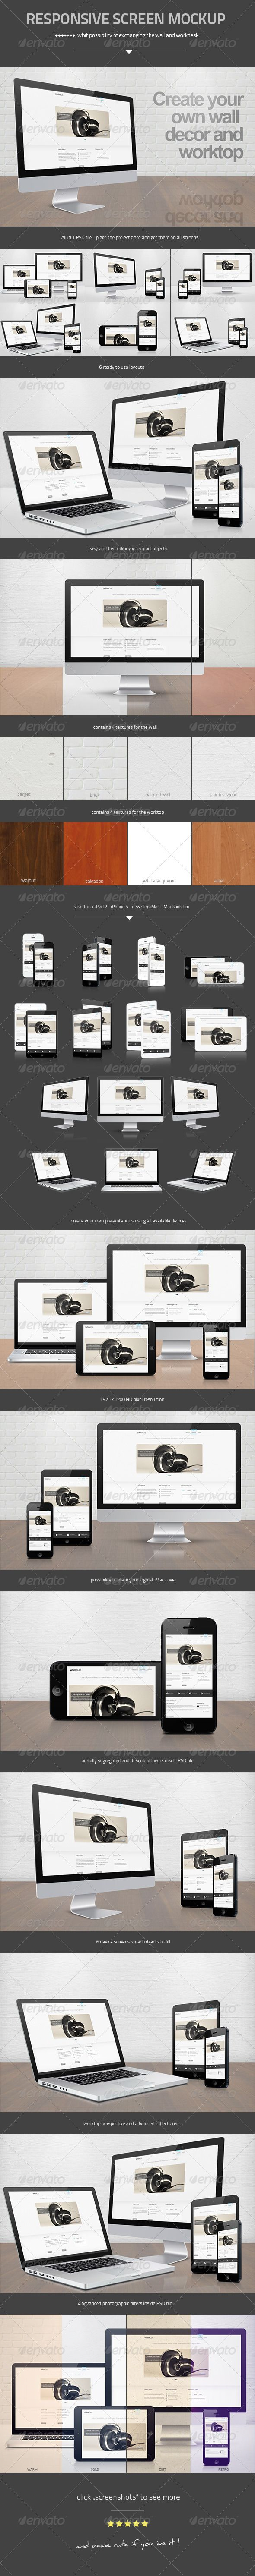 233 best Mockups images on Pinterest | Snood, Social media design ...